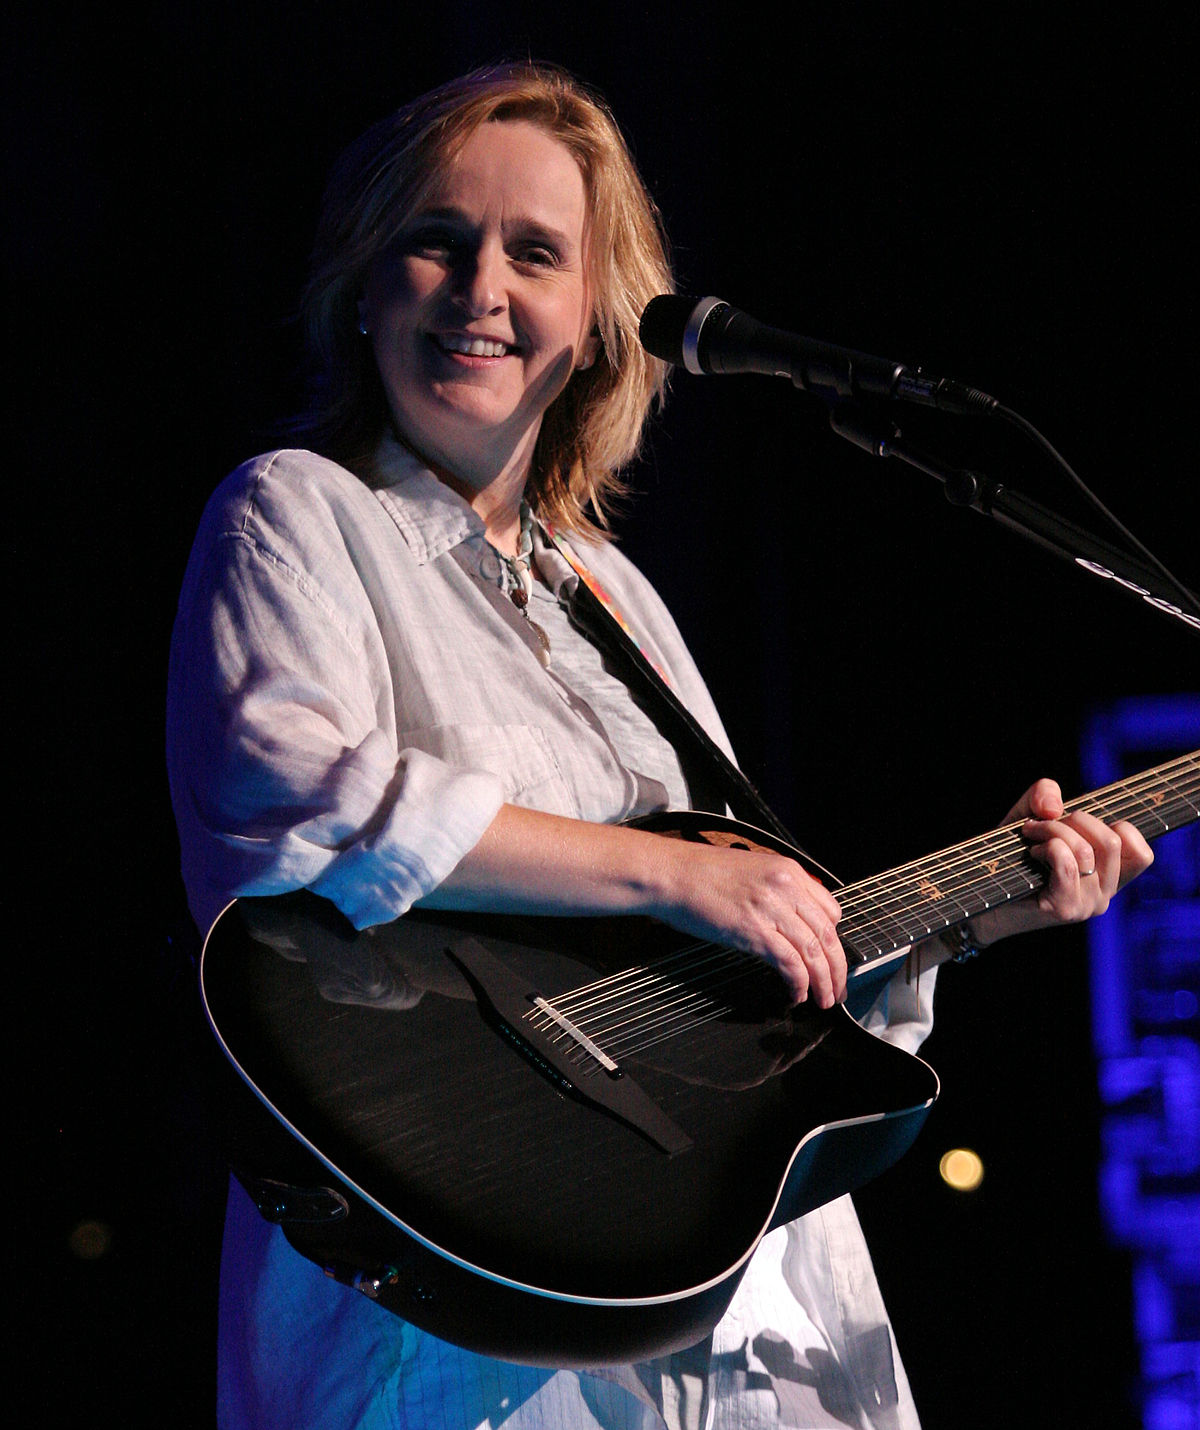 Melissa etheridge guitar